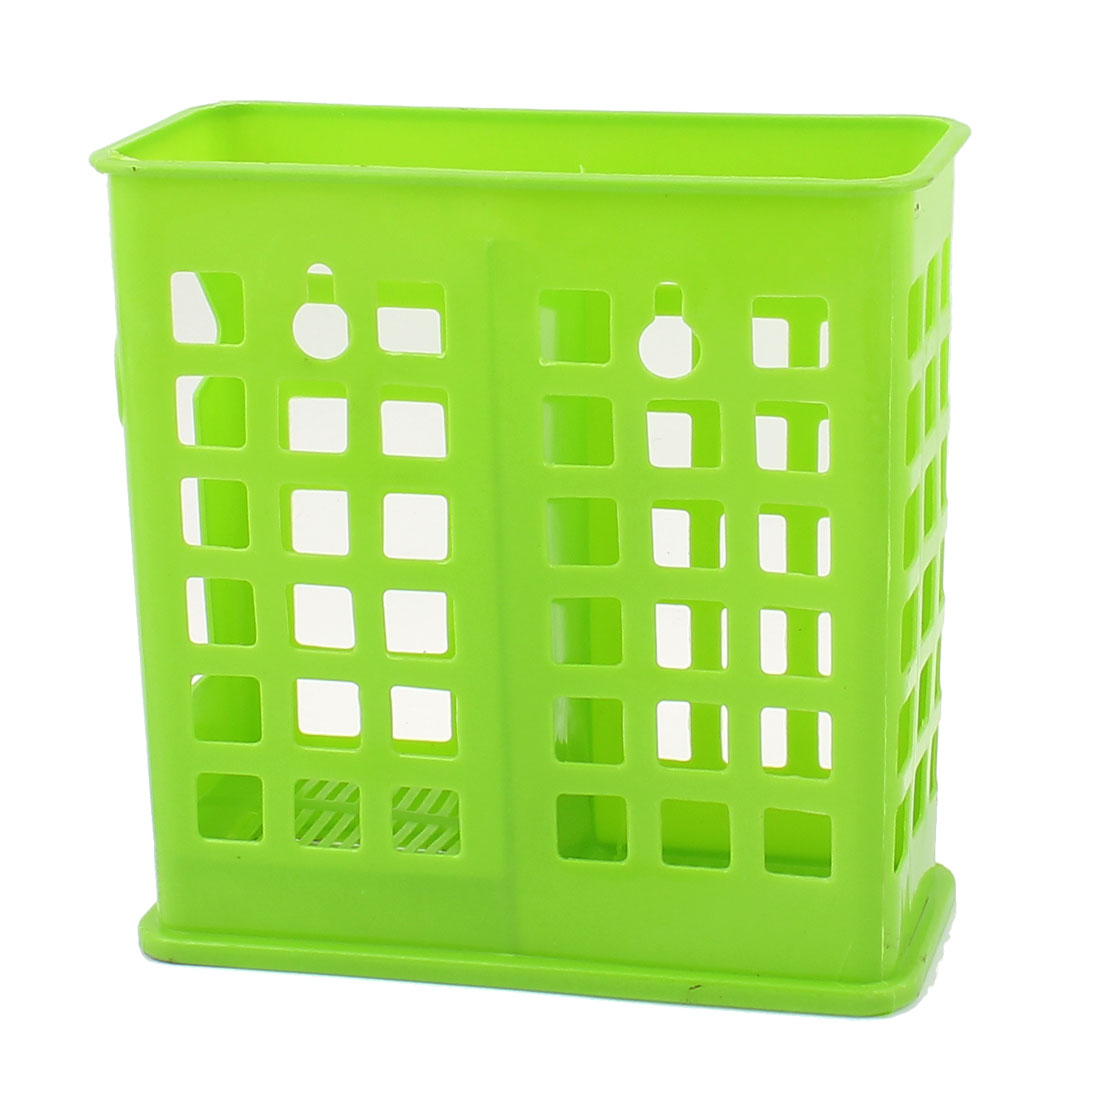 Kitchen Chopsticks Spoon 2 Compartment Plastic Hollow Out Basket Case Cage Holder Green